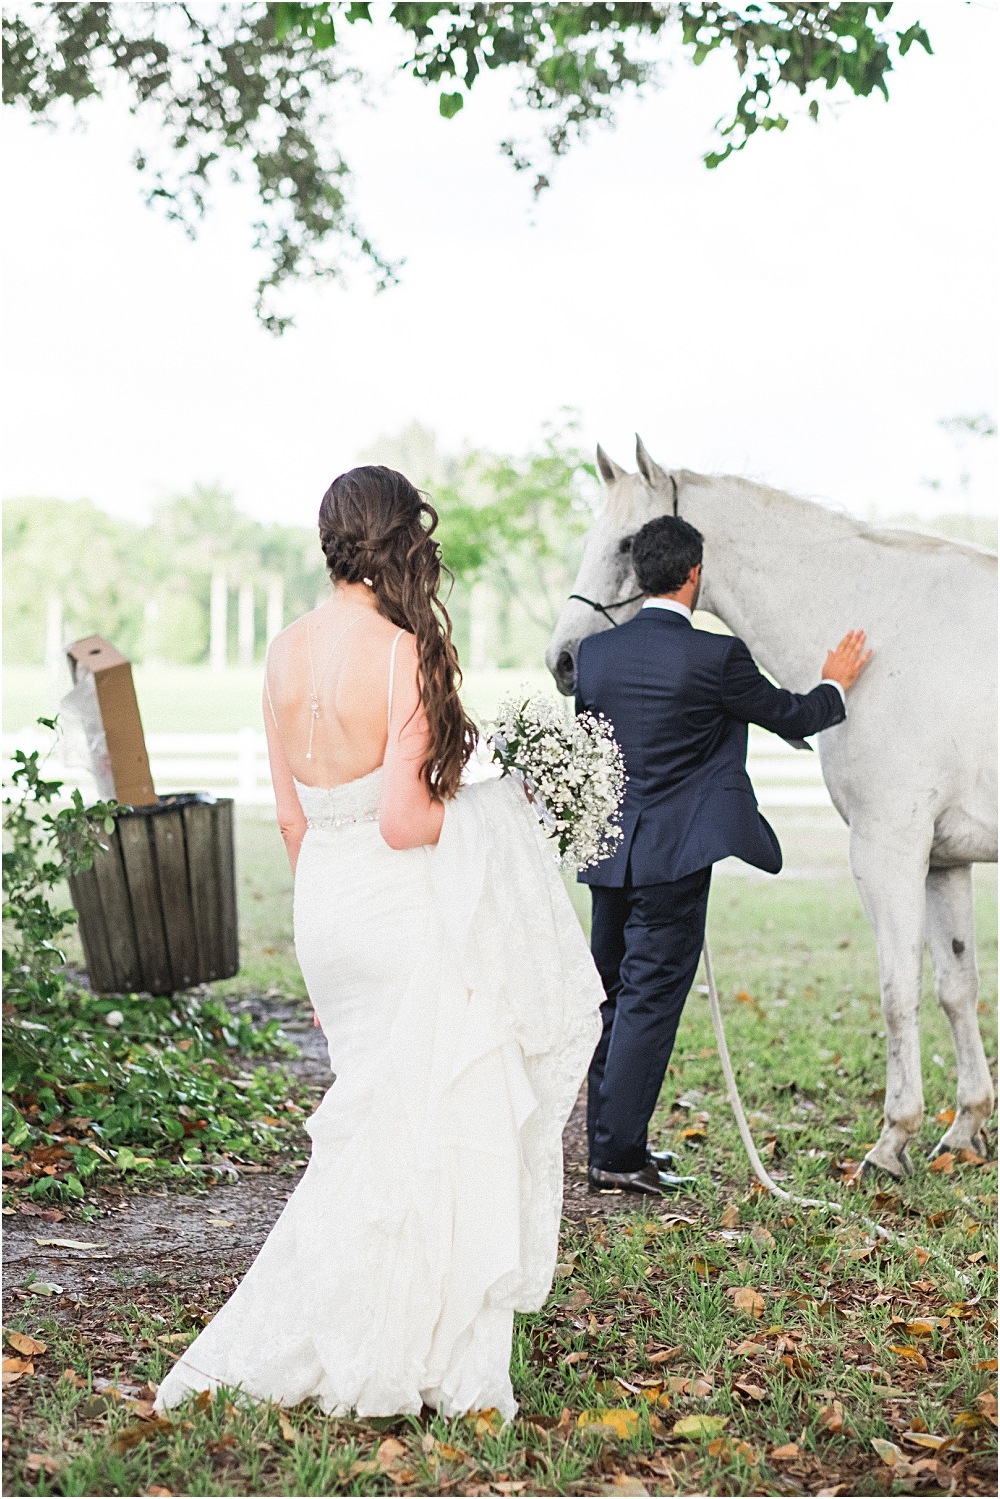 miami-wedding-photographer-rustic-outdoor_0425.jpg